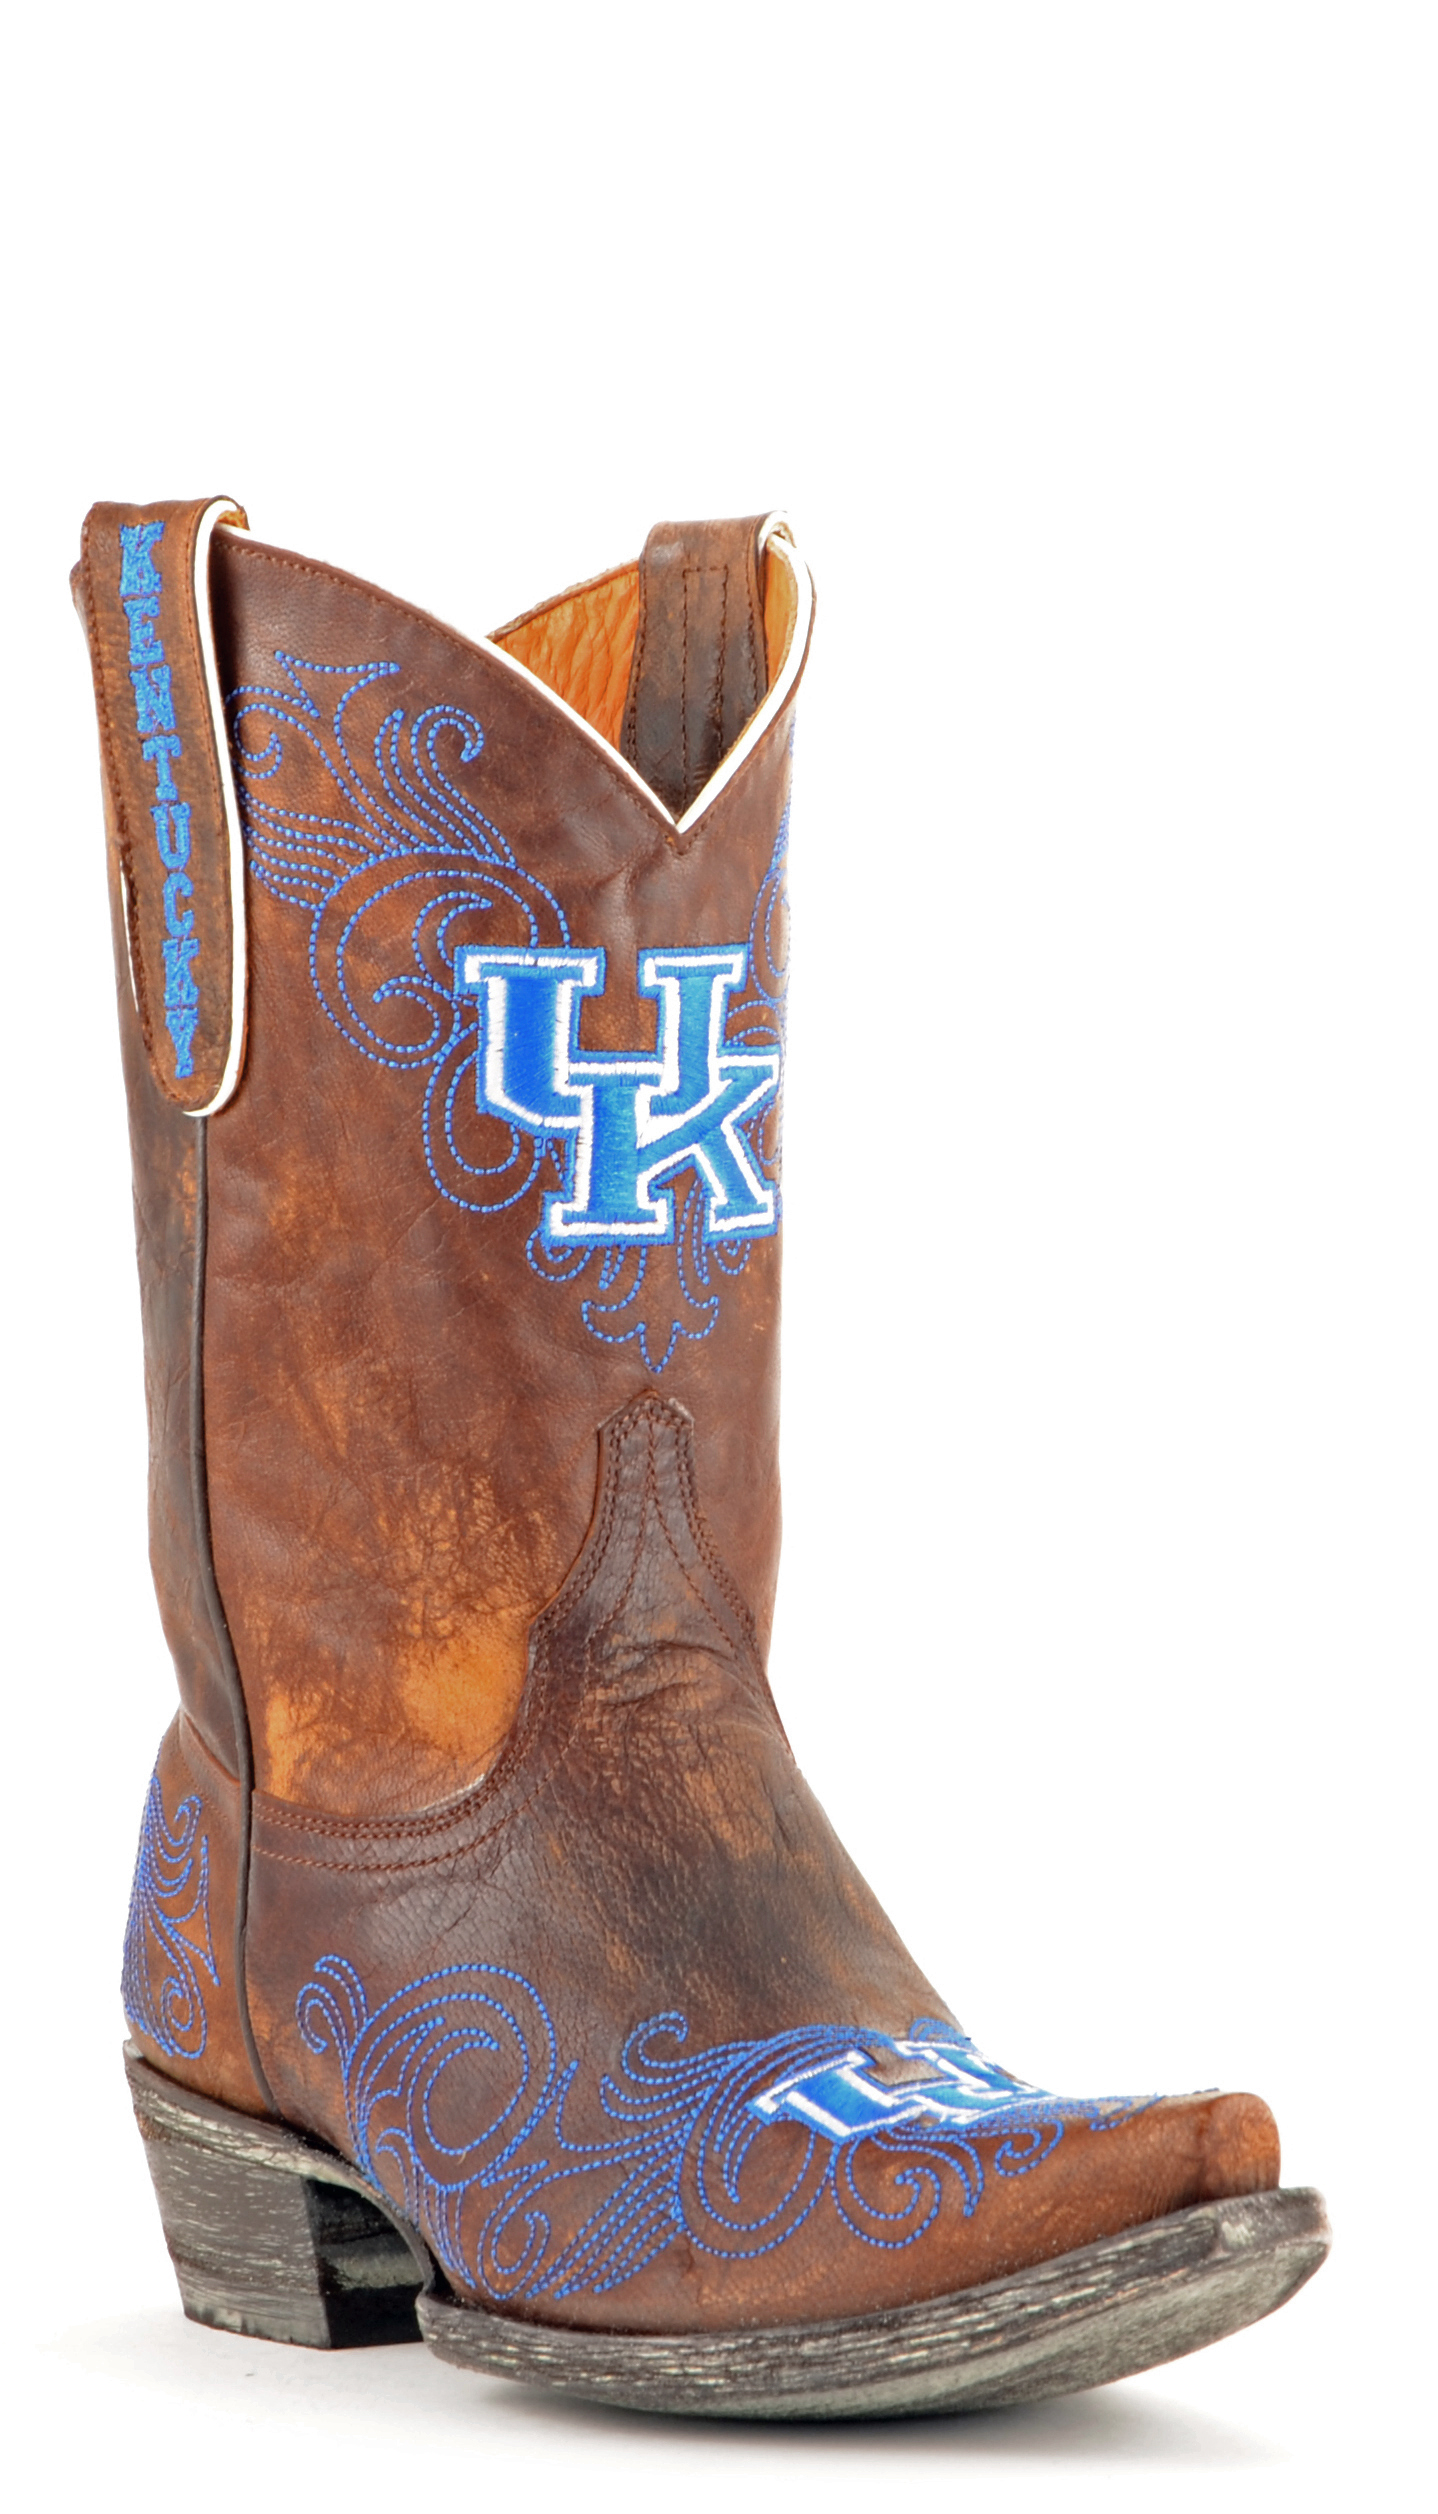 "Gameday Boots Women's 10"" Short Leather Kentucky Cowboy Boots 3738 New by GameDay Boots"